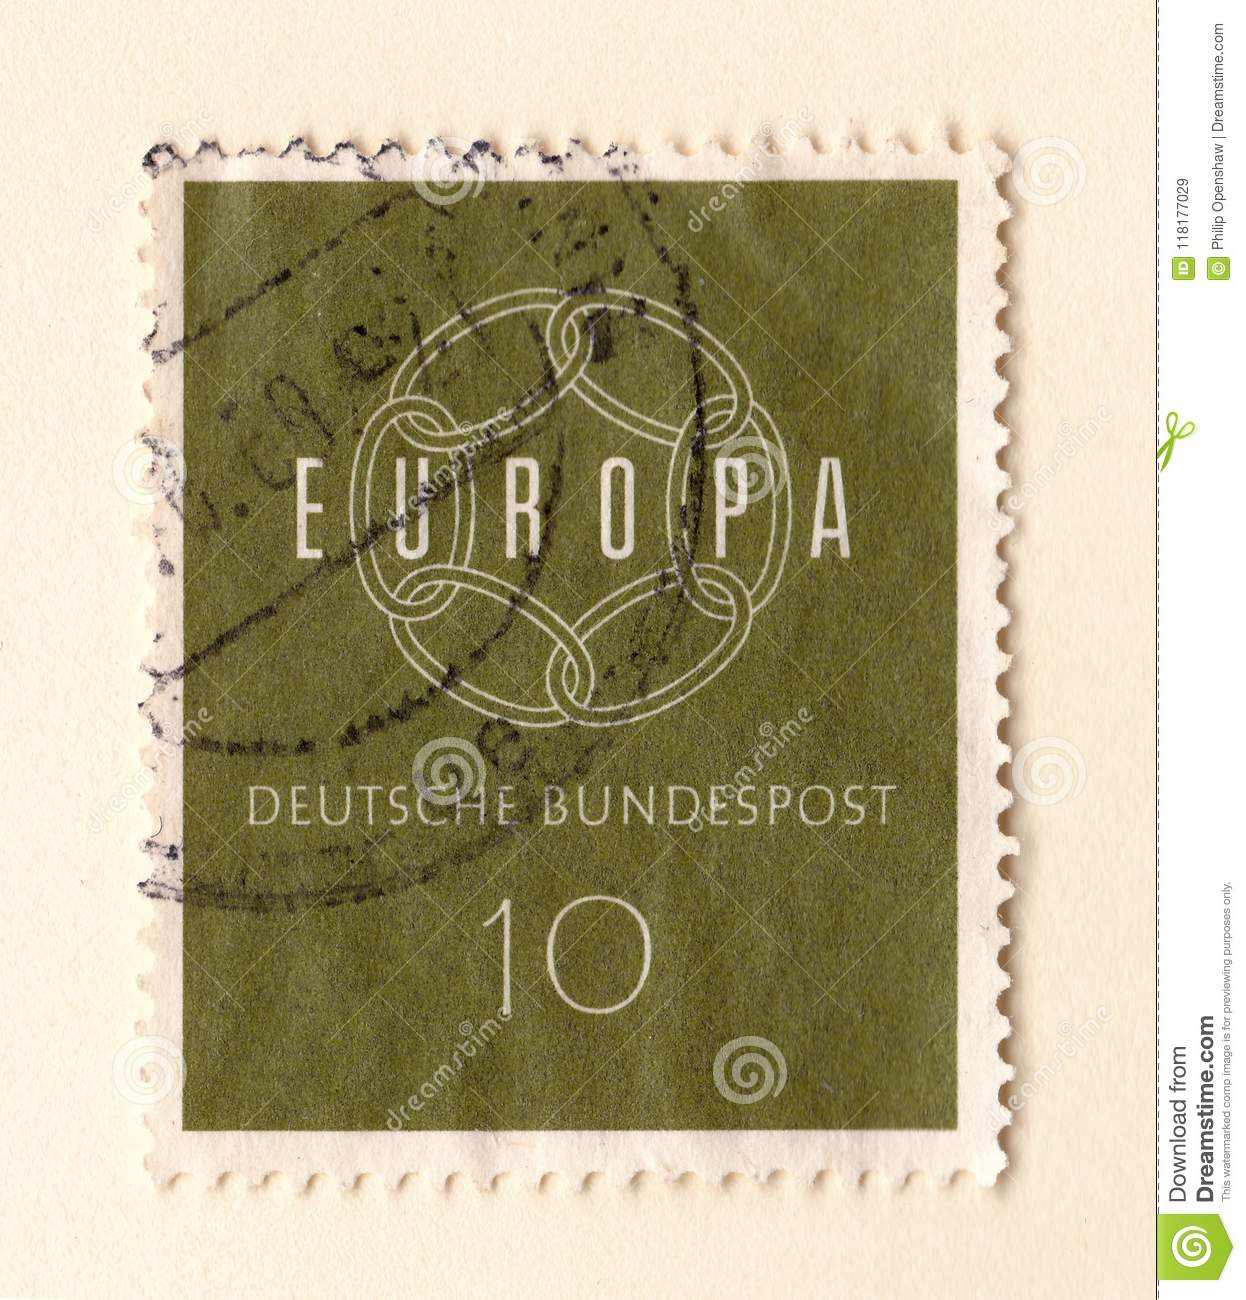 An Old Green German Stamp Celebrating The European Union With Six Interlocking Rings